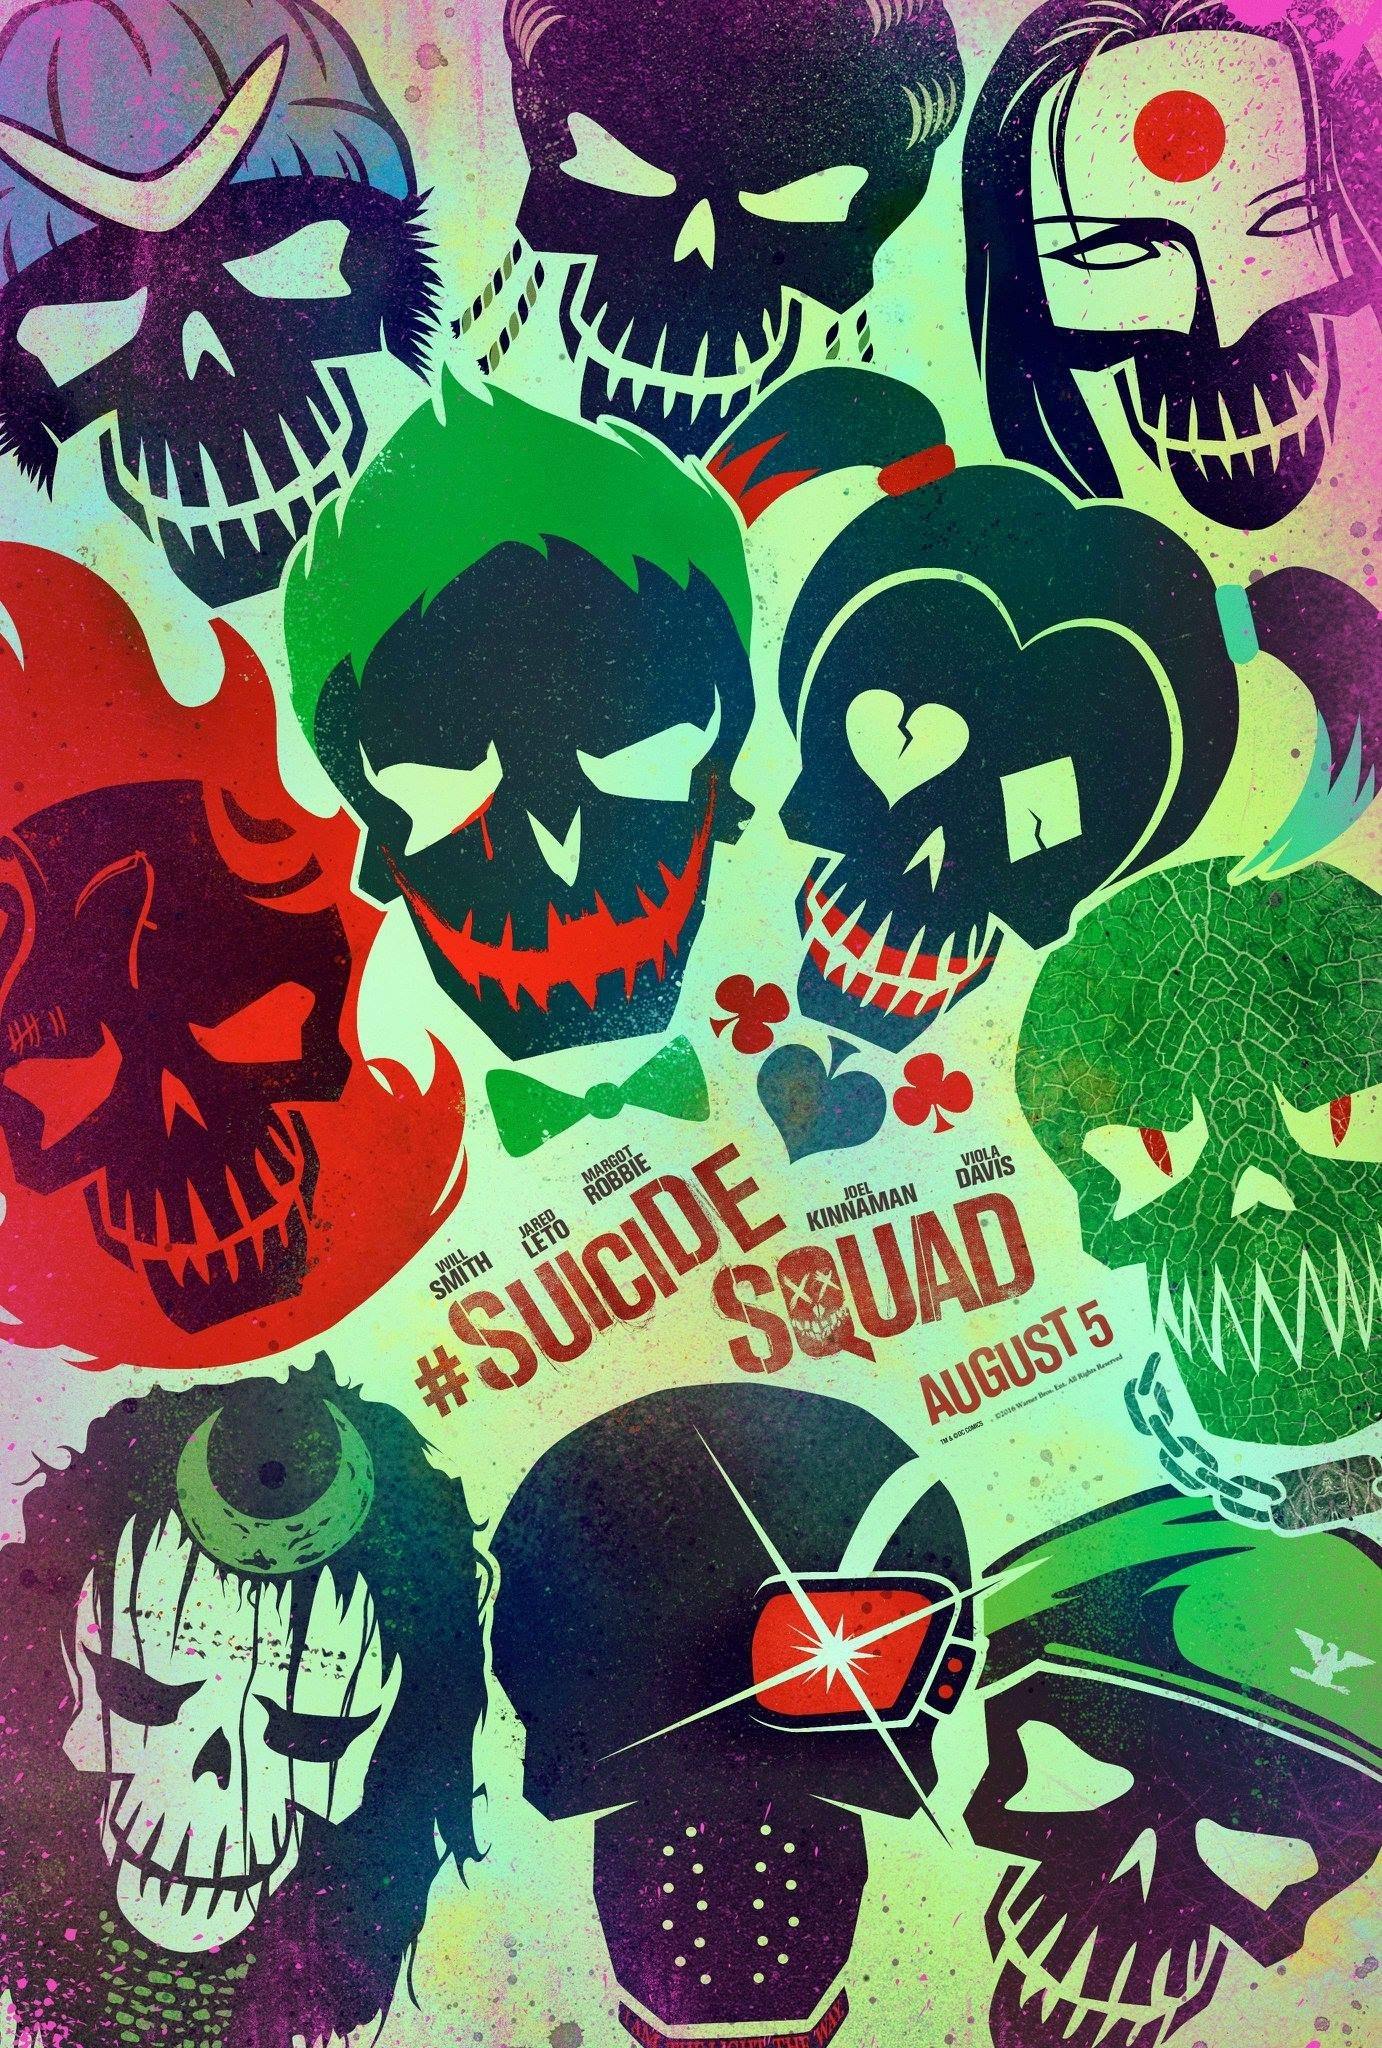 suicide squad hd desktop wallpapers | 7wallpapers